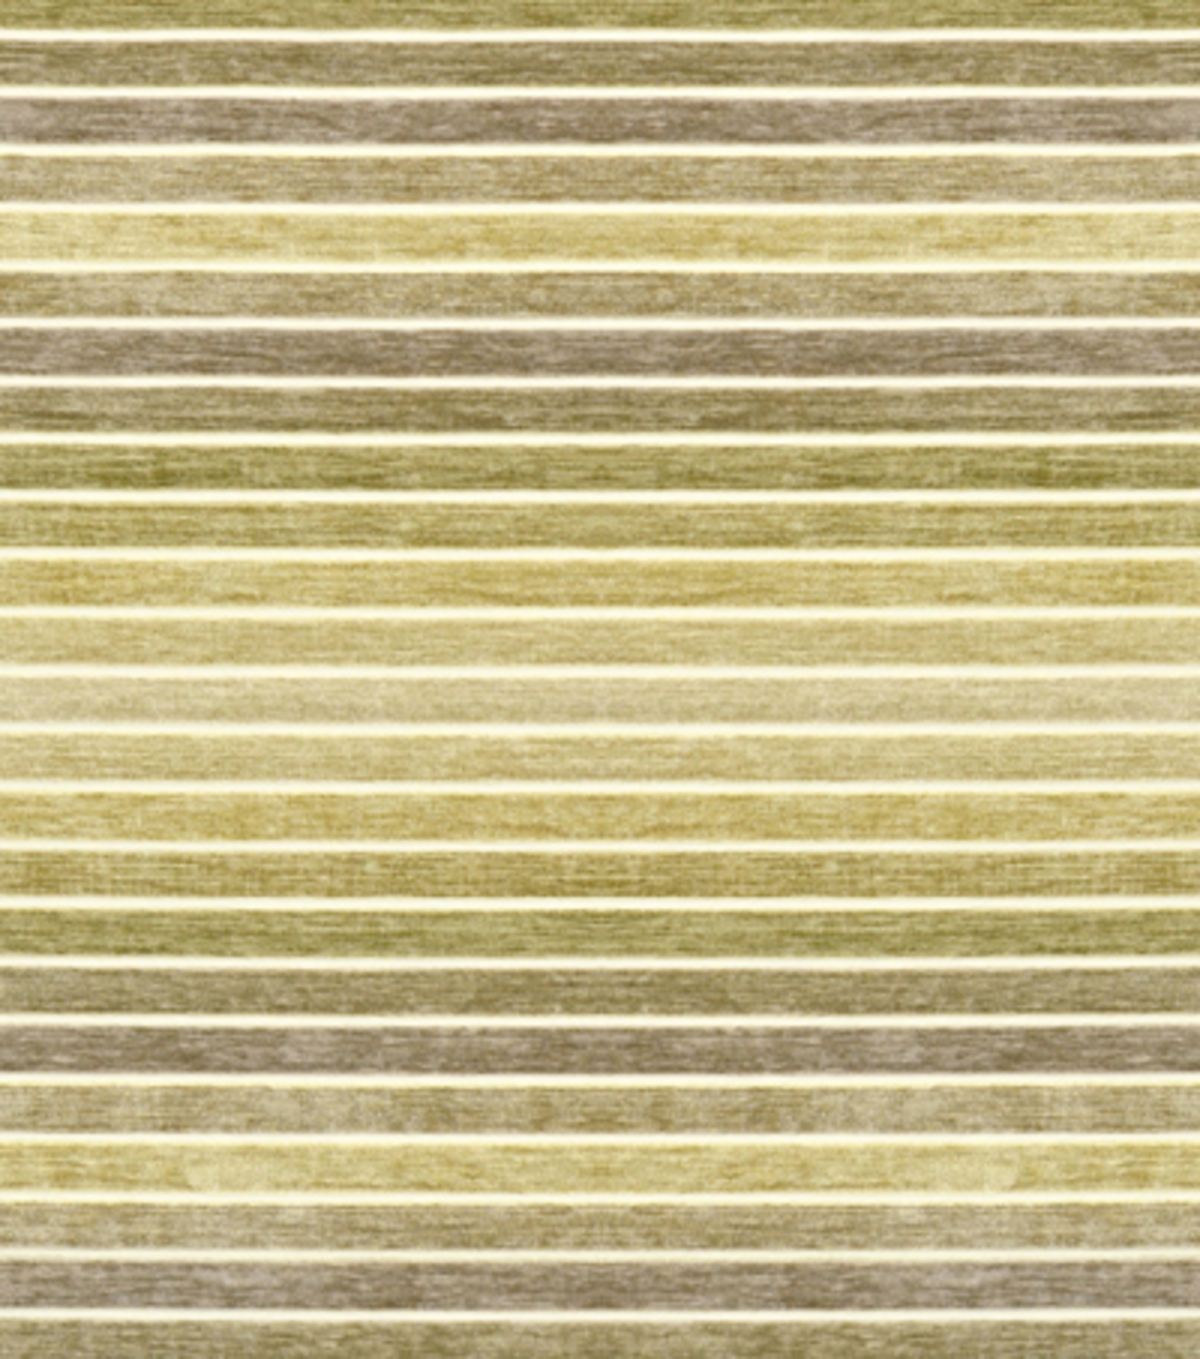 Home Decor 8\u0022x8\u0022 Fabric Swatch-Covington Spectra 118 Sandstone